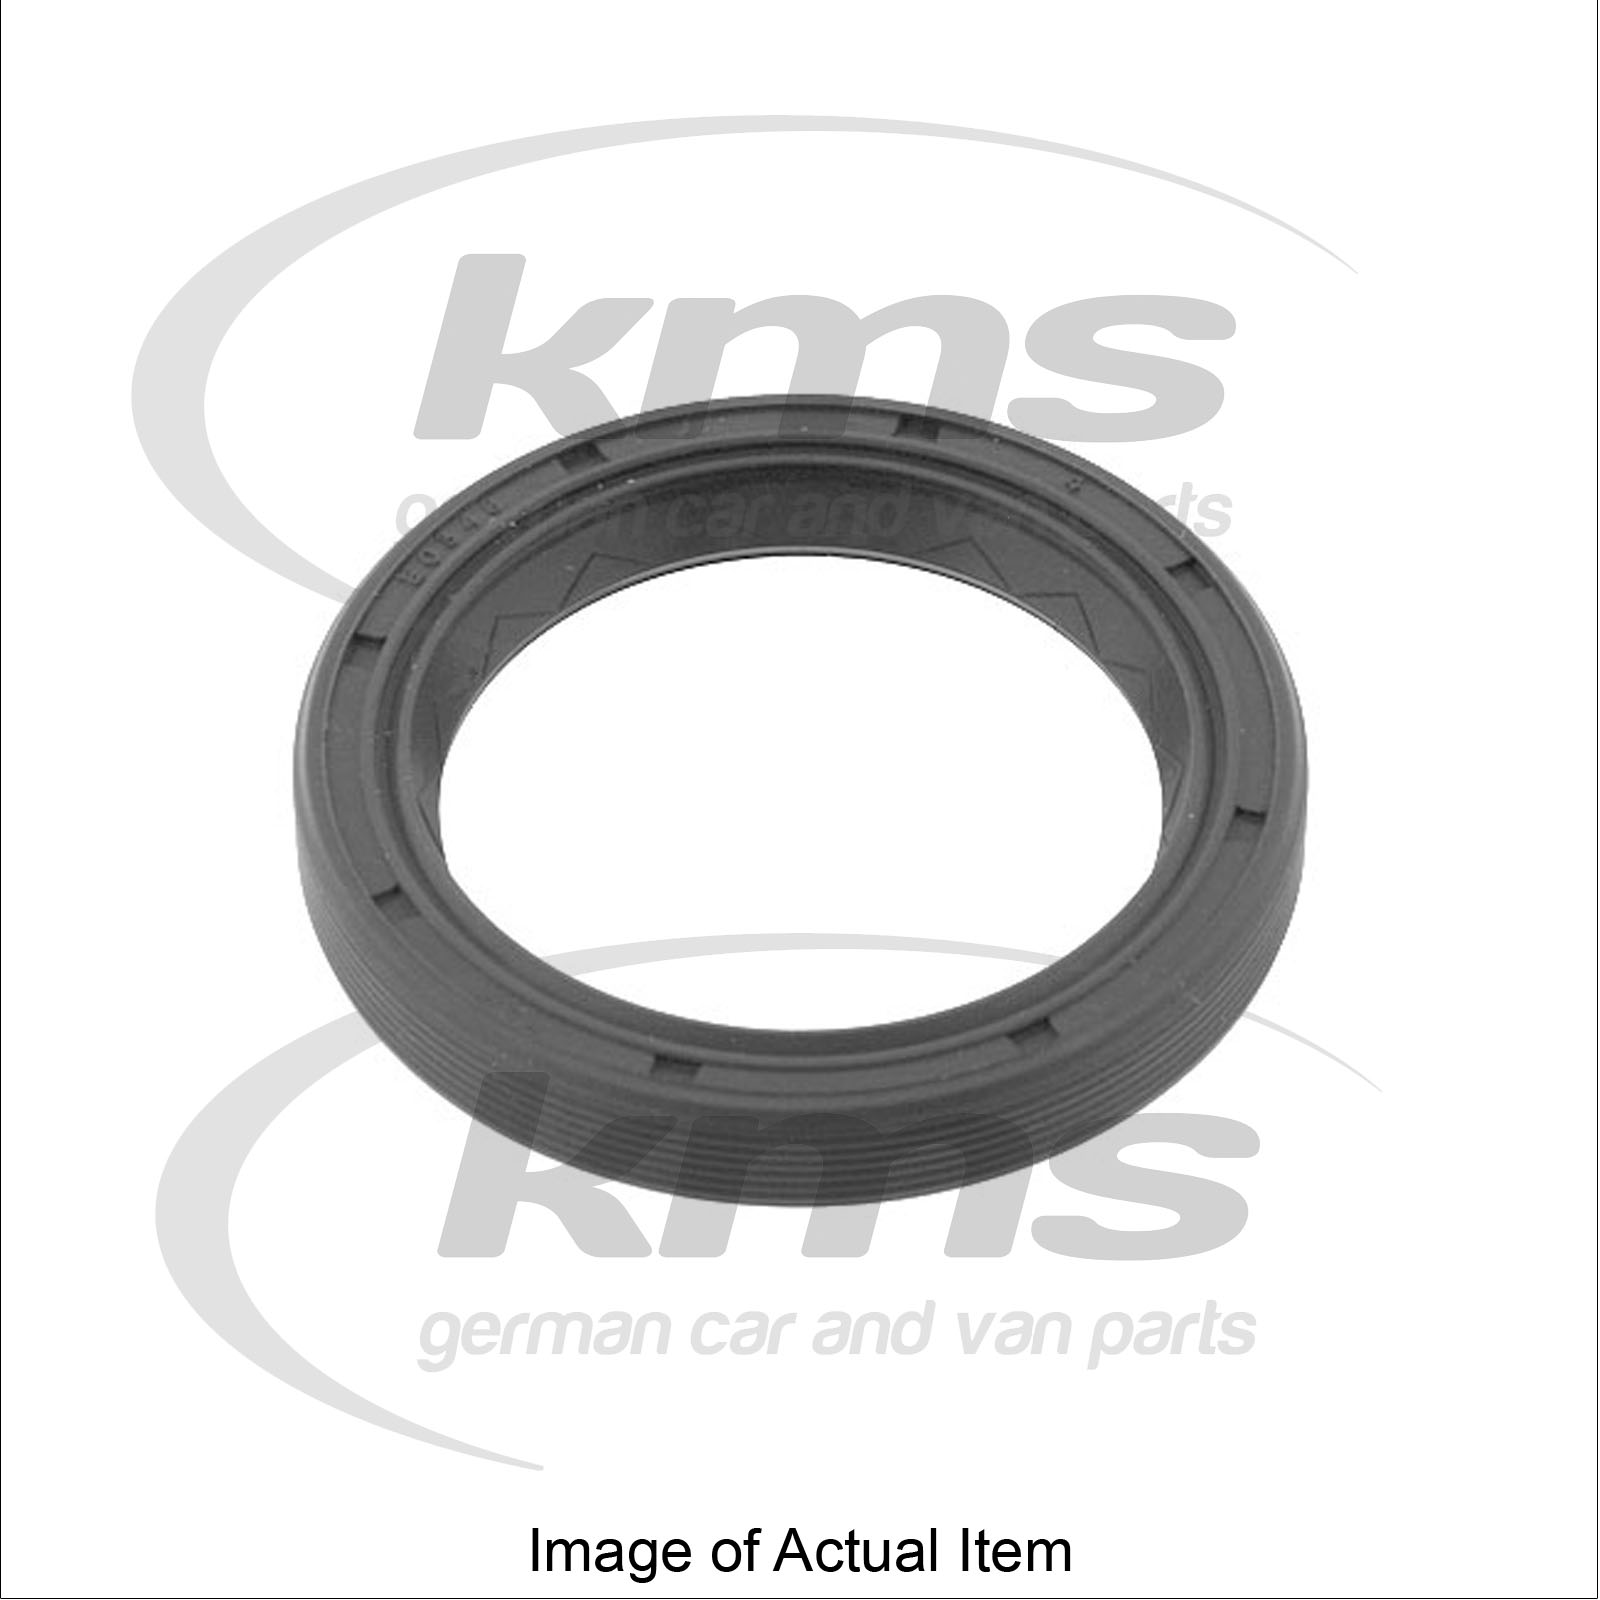 CAMSHAFT OIL SEAL BMW 3 Series Saloon 325i E30 2.5L